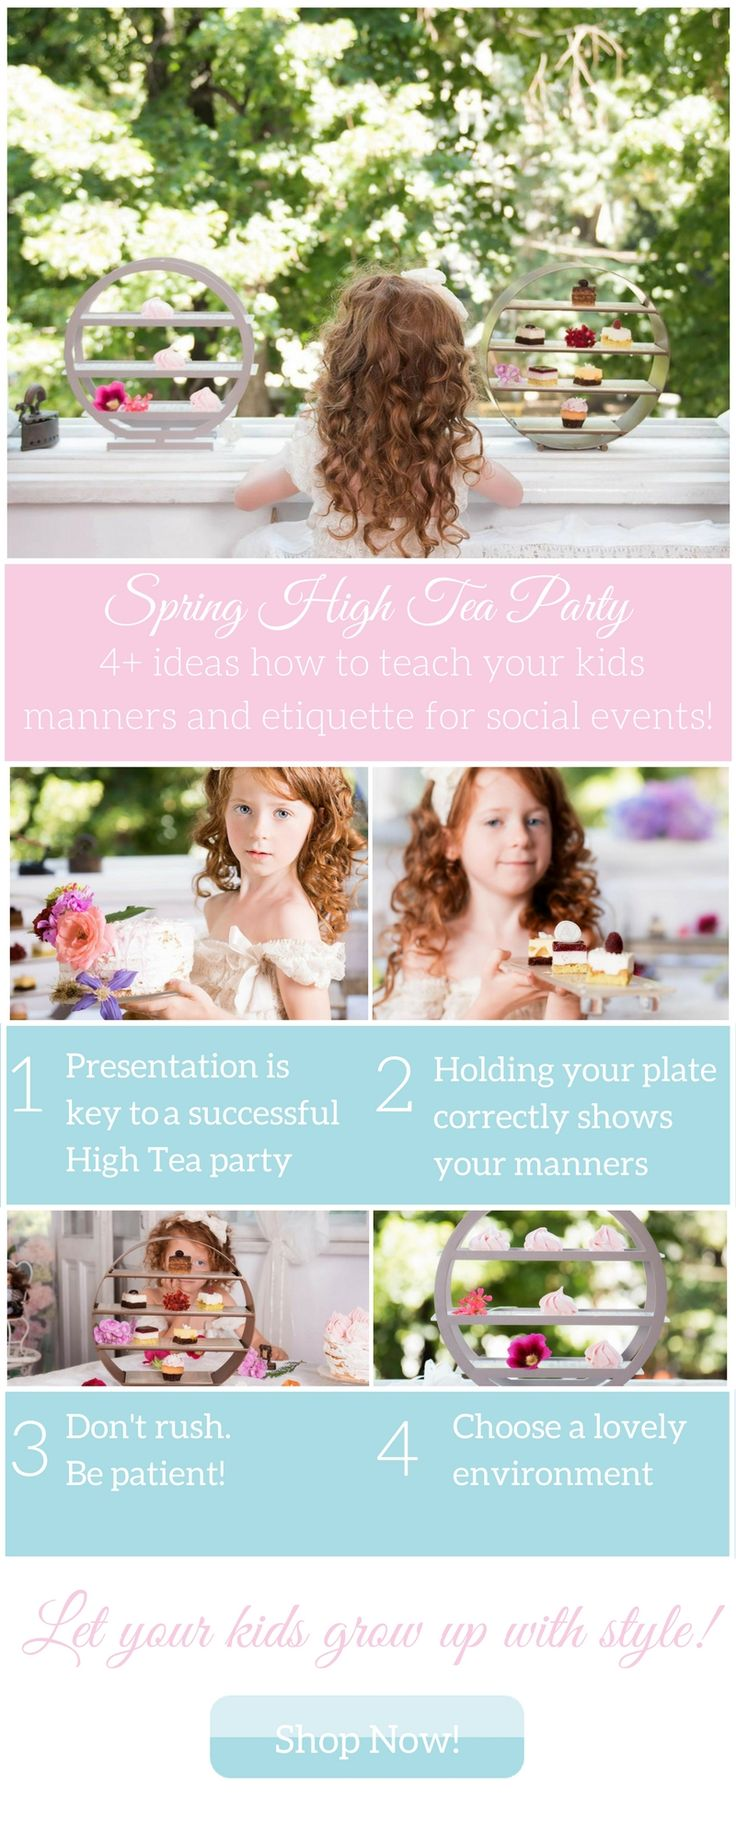 Spring High Tea Party 4+ ideas how to teach your kids manners and etiquette for social events! 1. Presentation is key to a successful High Tea party 2. Holding your plate correctly shows your manners 3. Don't rush. Be patient! 4. Choose a lovely environment Let your kids grow up with style! Chose from a wide collection of luxury high tea stands made from glass in combination with different high quality materials. For a mesmerizing presentation of desserts!